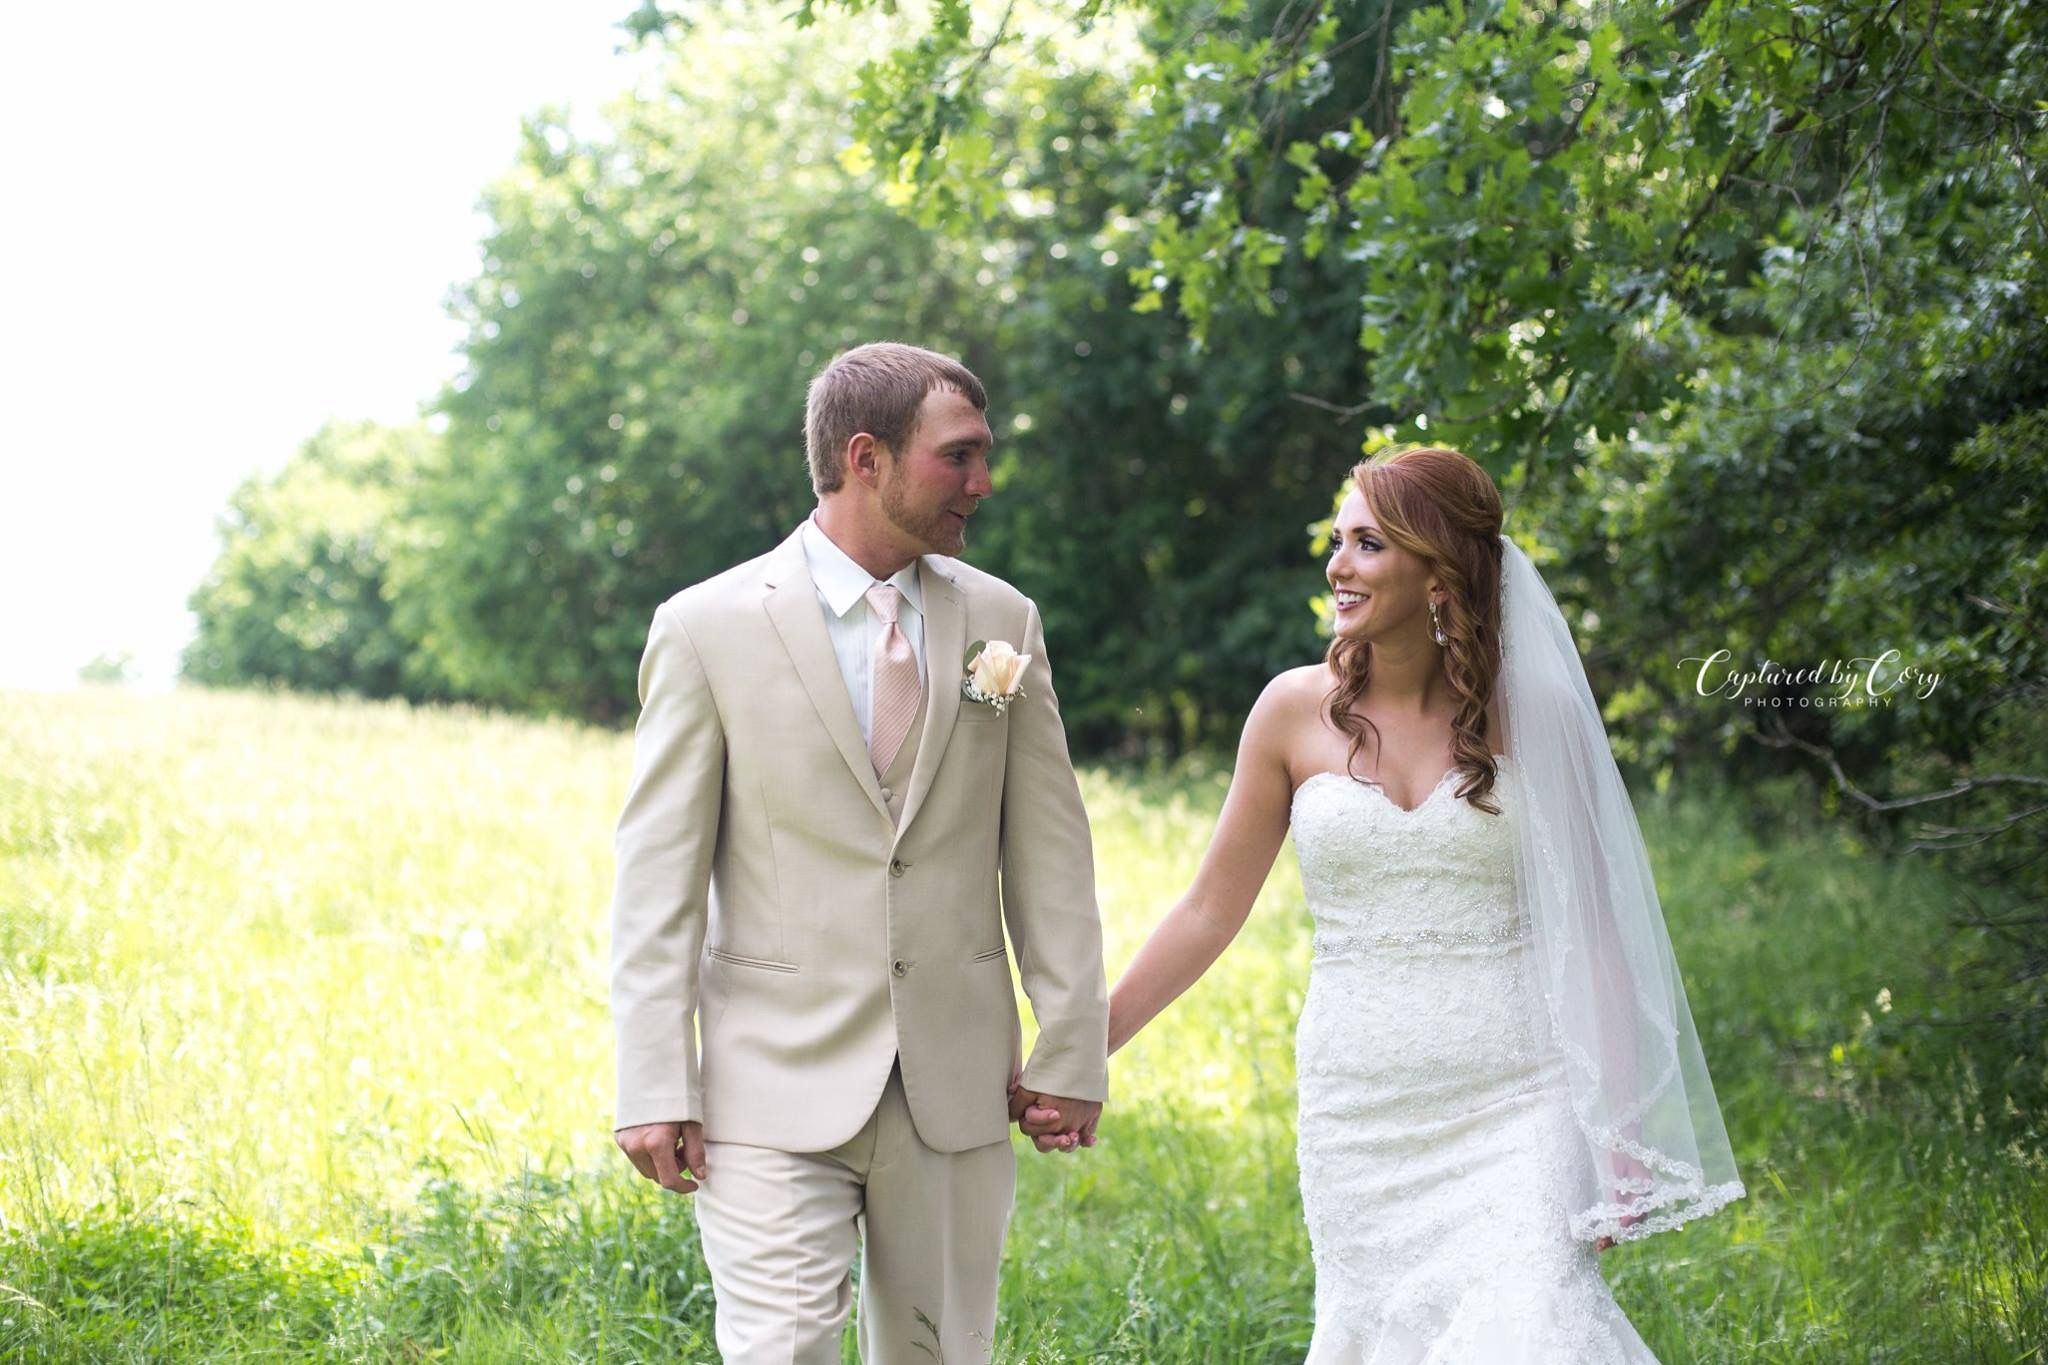 Captured By Cory Photography Springfield Mo Wedding Photographer Redhair Beautifulbride Www Fb